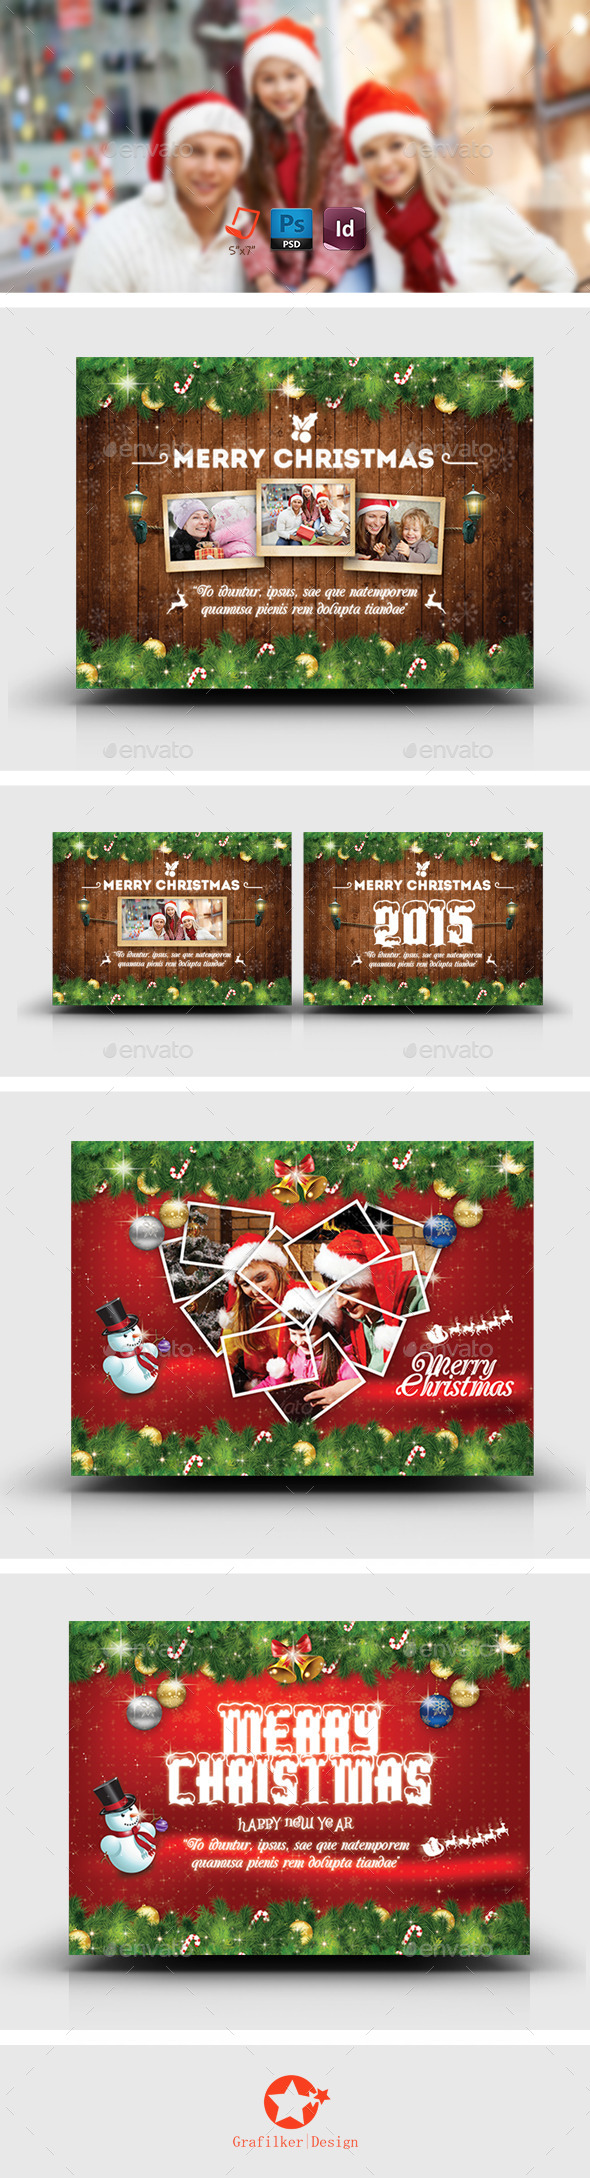 Christmas Postcard Bundle Templates - Corporate Flyers